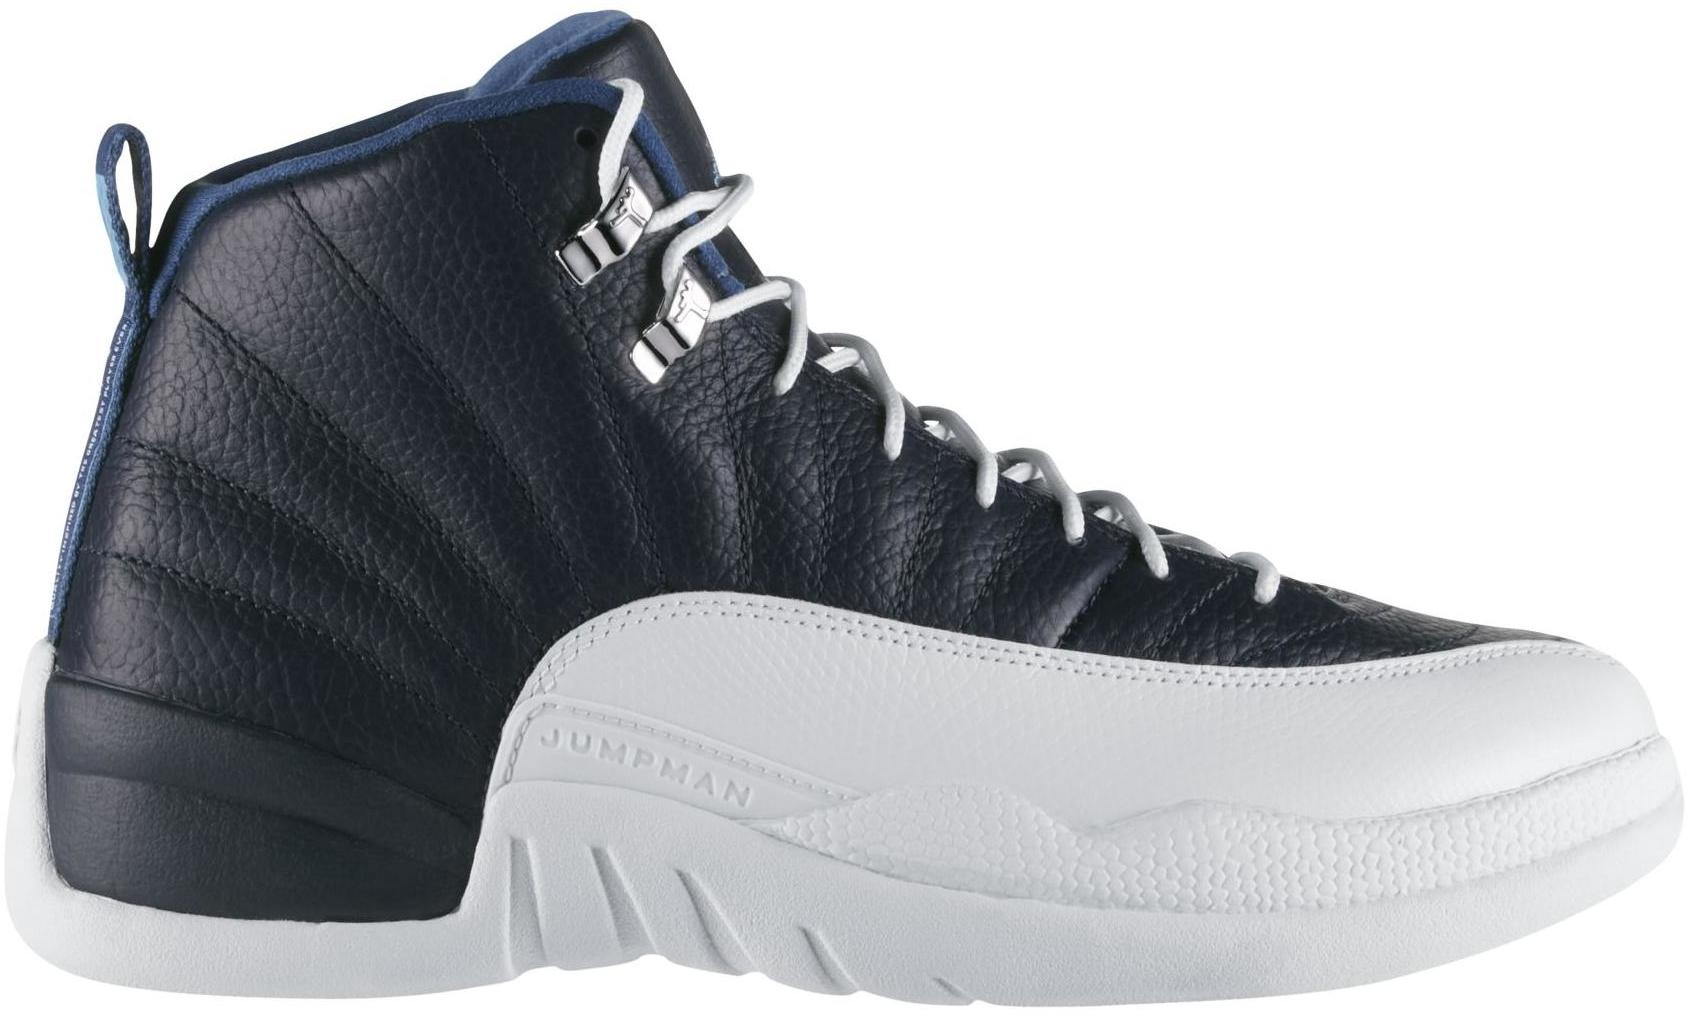 new product 12700 27c3e ... coupon for jordan 12 retro obsidian 2012 130690 410 ee773 678dc